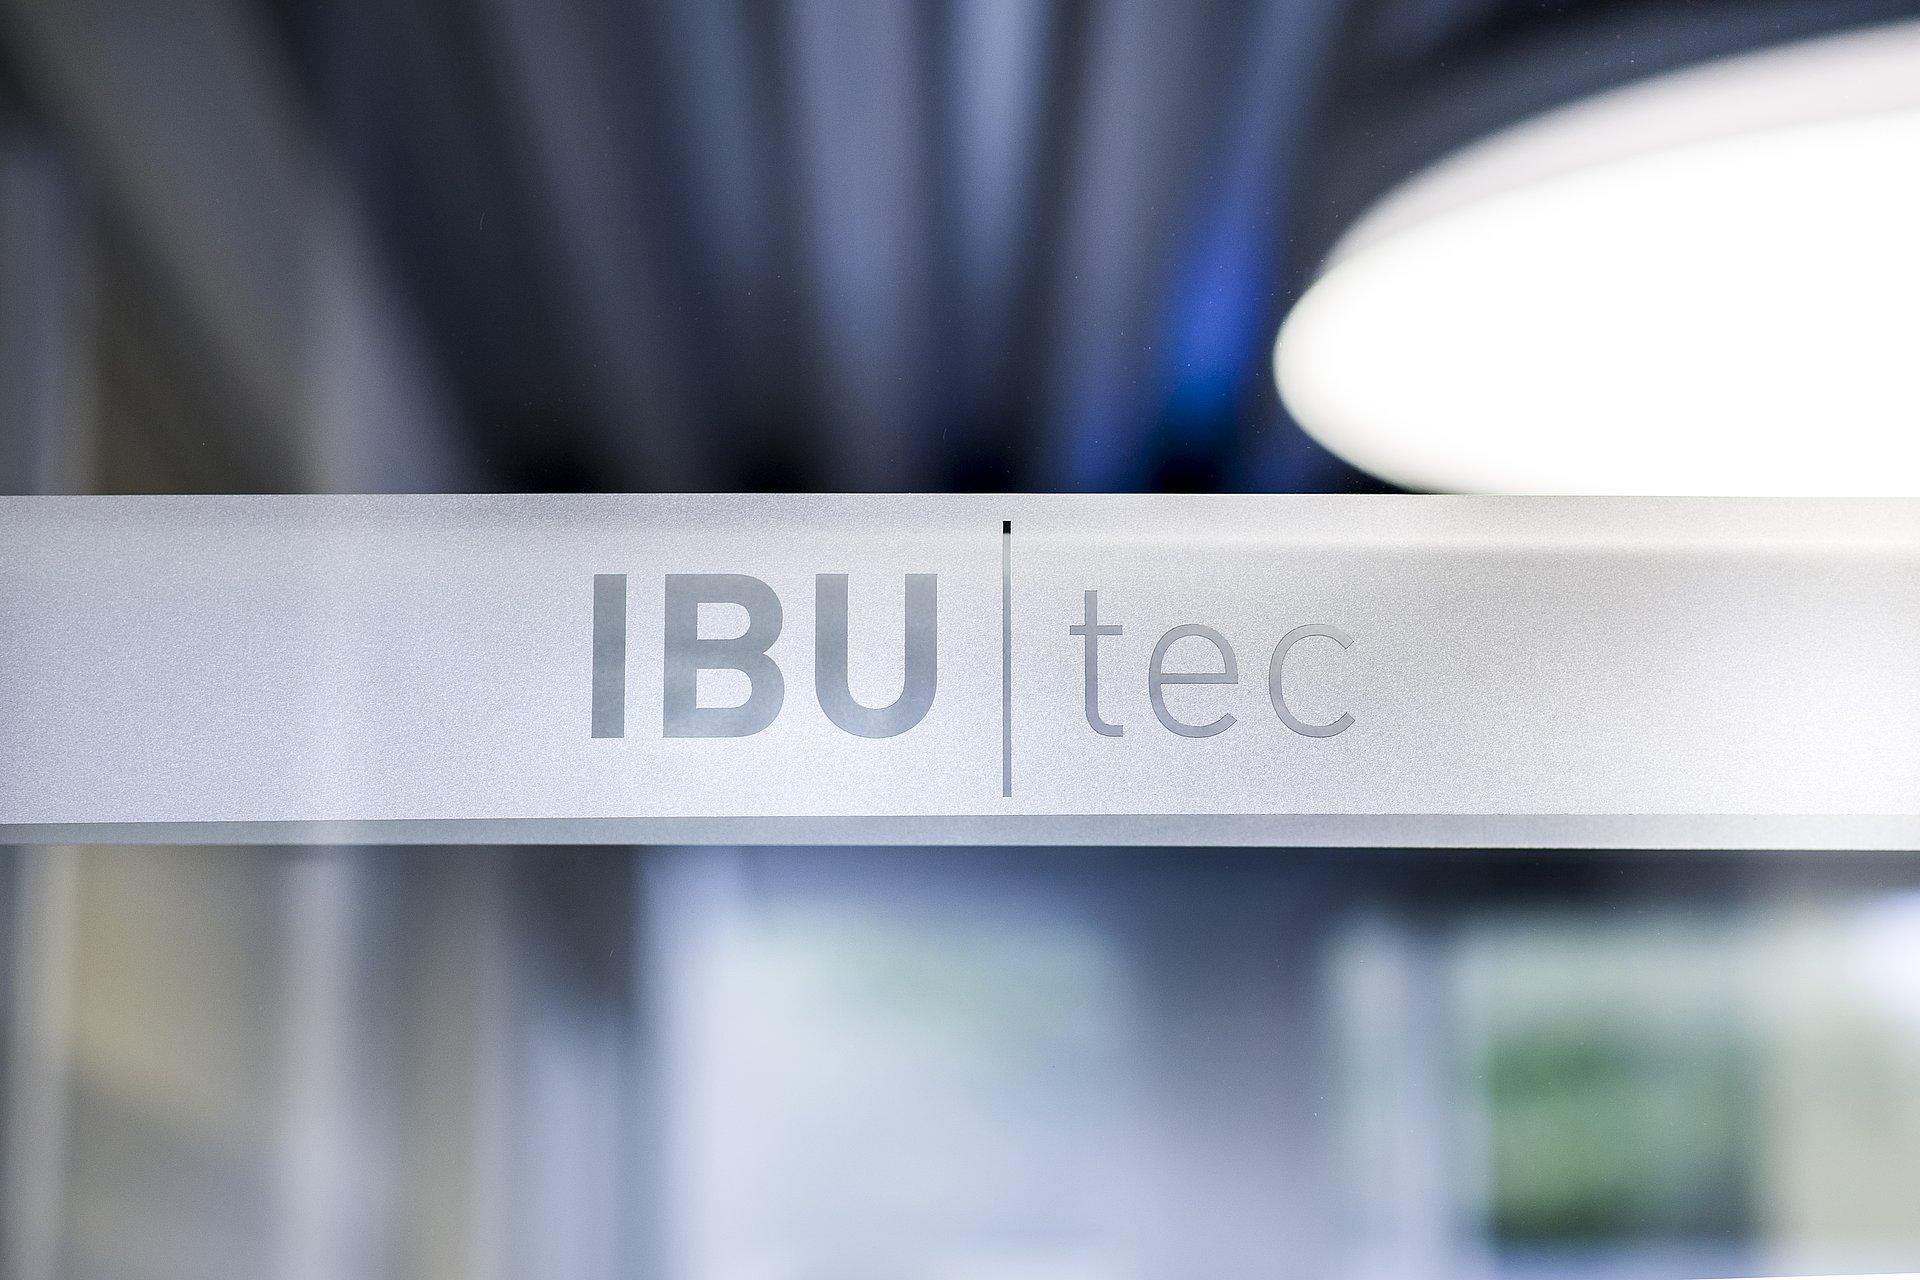 IBU-tec Logo with beautiful artsy lights in the background: blue, grey and white. Some green